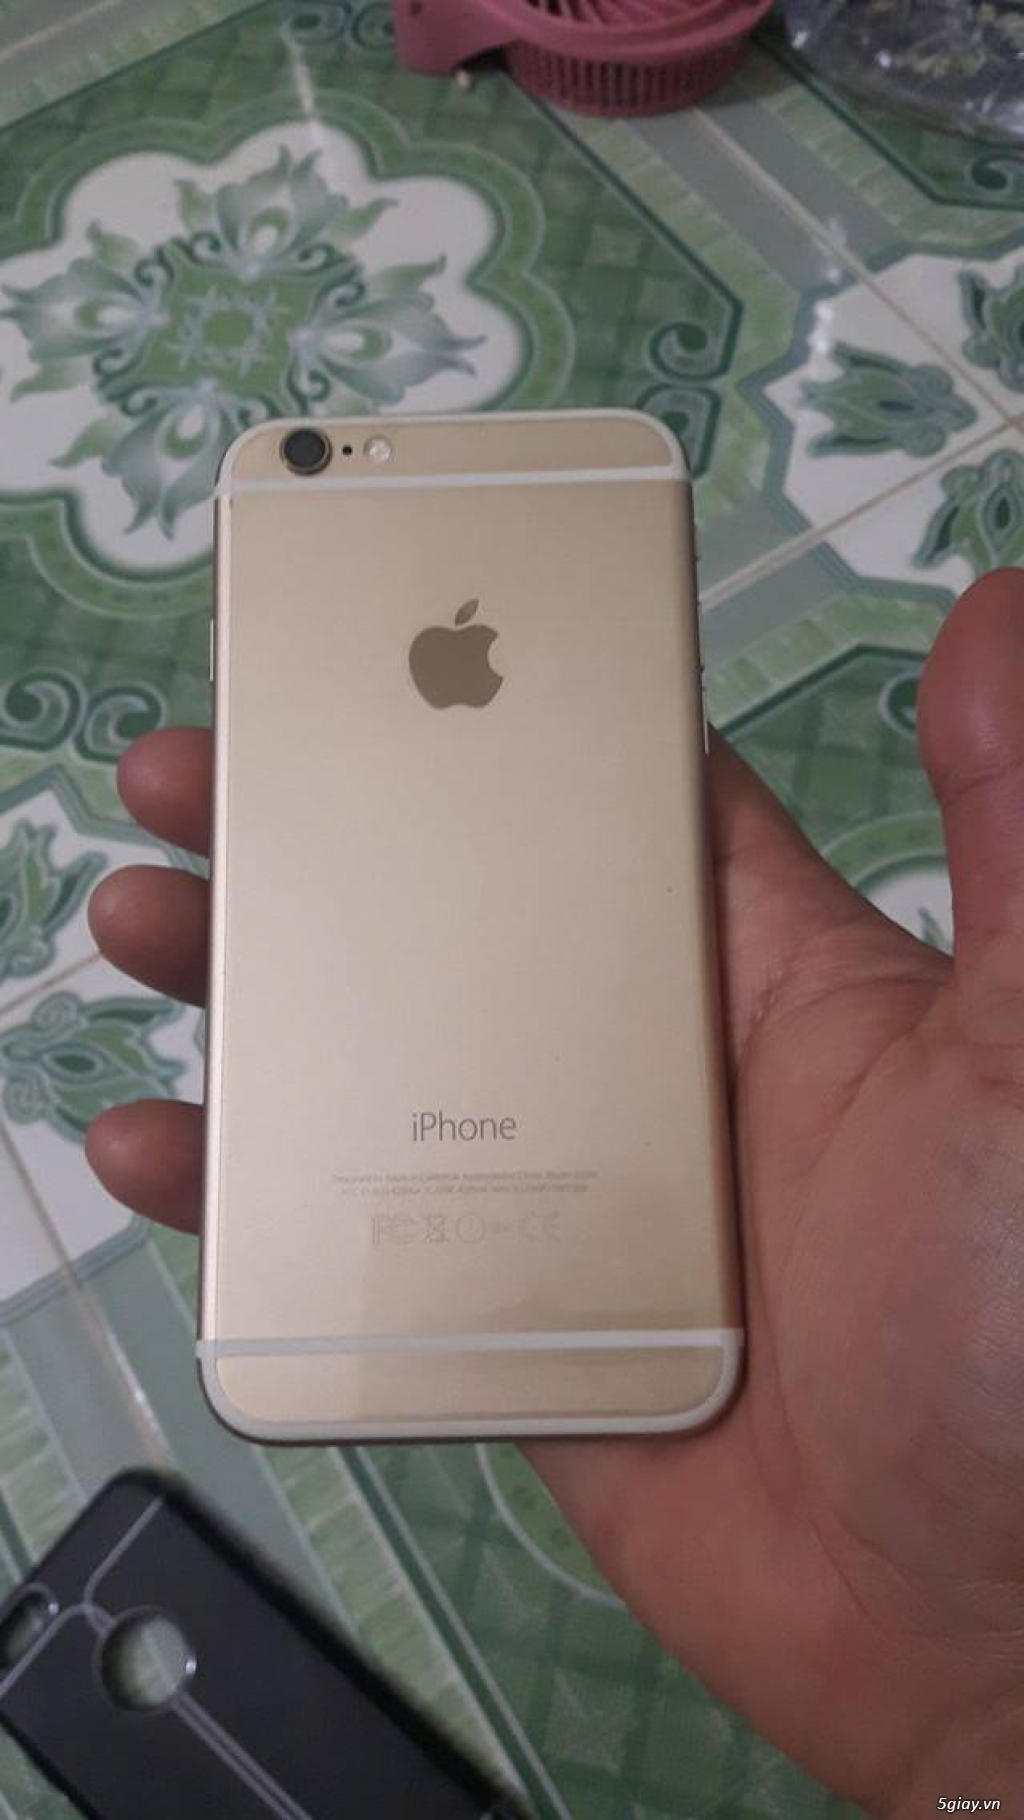 iphone 6 gold 64gb fpt còn bh 2-2017